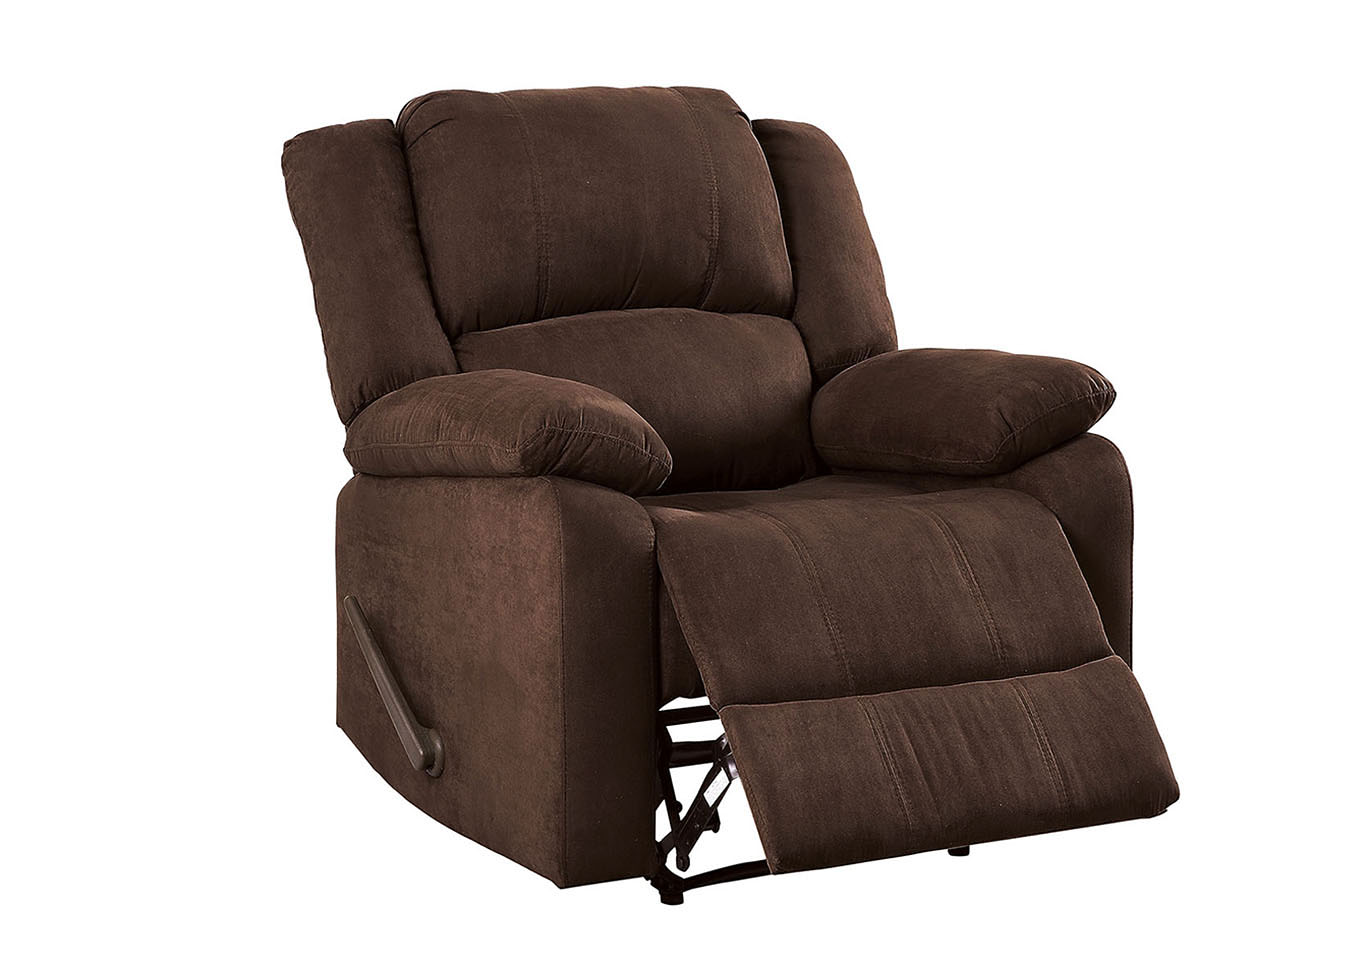 McLaughlin Brown Leatherette Recliner,Furniture of America